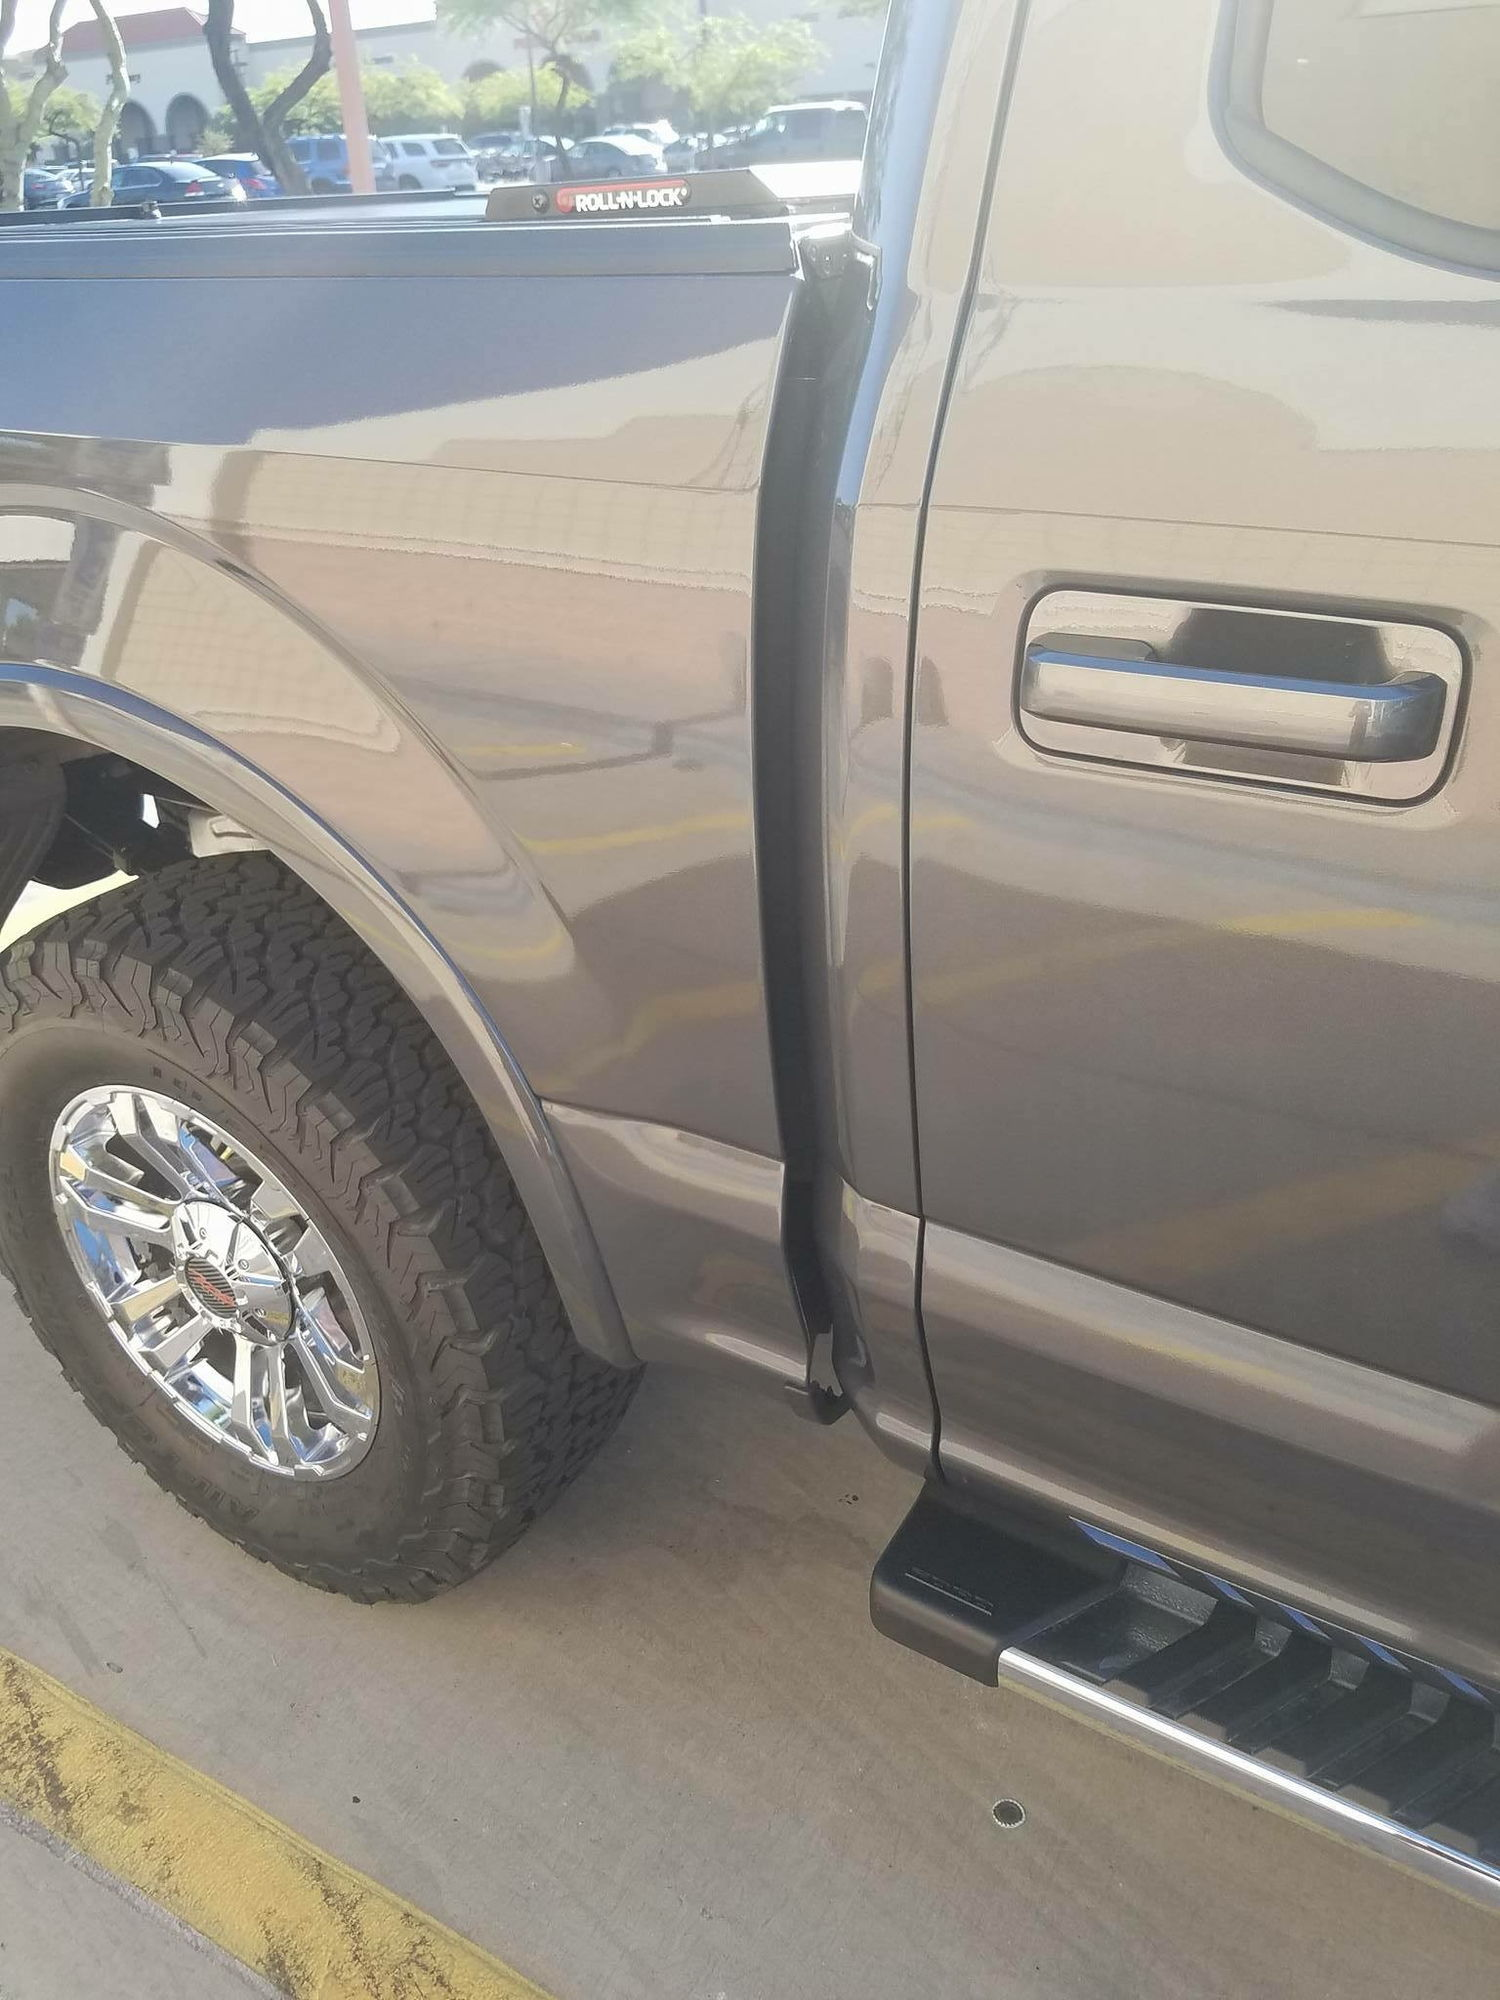 2016 f150s made with a different aluminum than 2015s page 2 ford f150 forum community. Black Bedroom Furniture Sets. Home Design Ideas